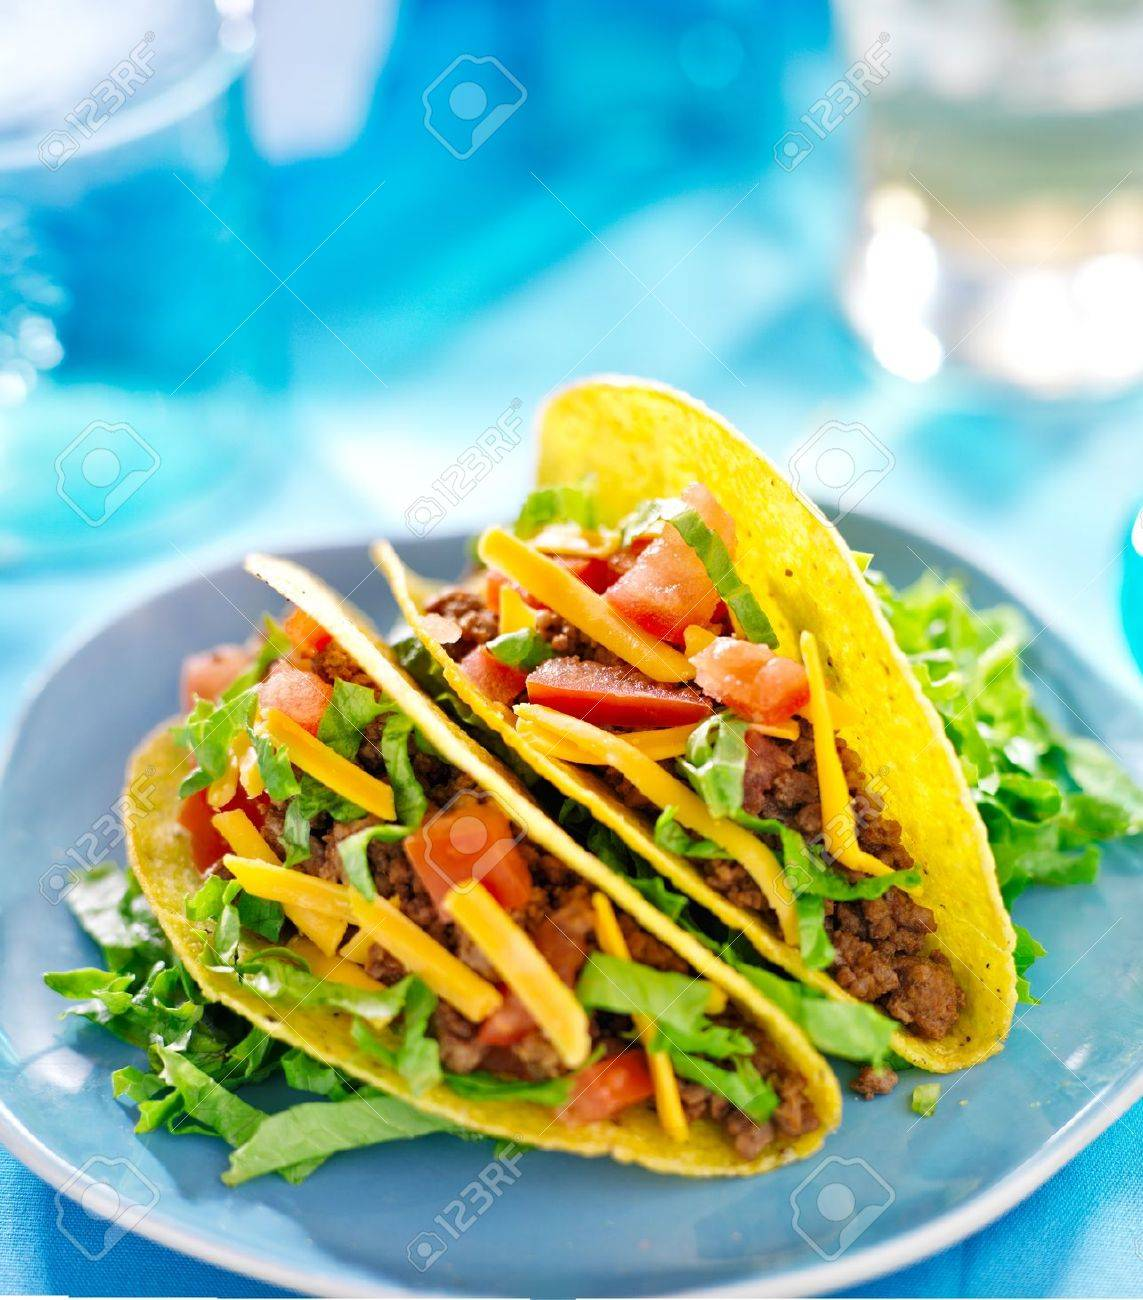 Mexican food - Hard shell tacos with beef, cheese, lettuce and tomatoes Stock Photo - 19424832